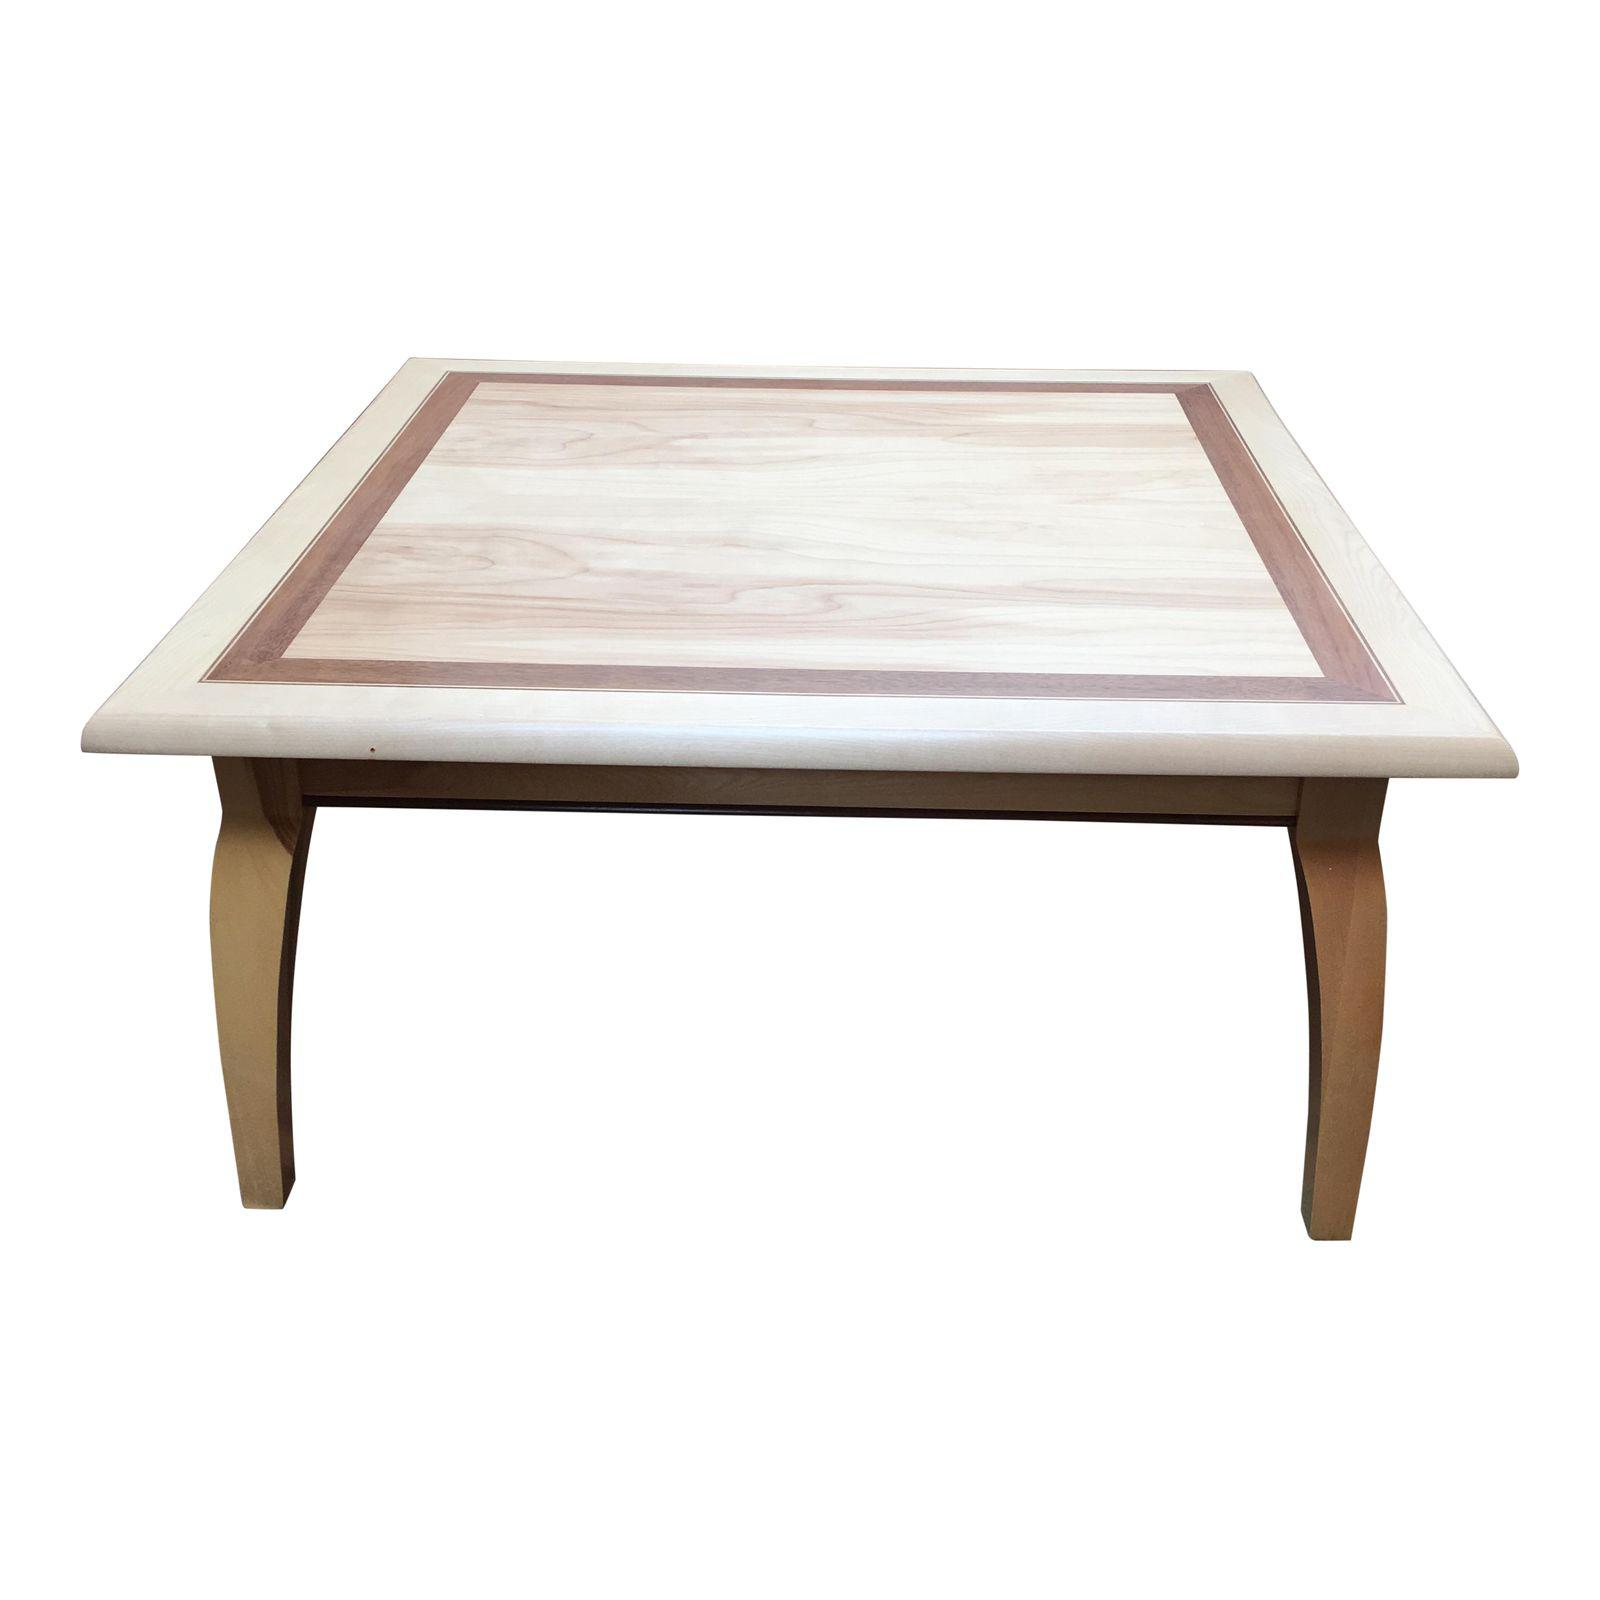 Ash Walnut Inlay Square Coffee Table Design Plus Gallery